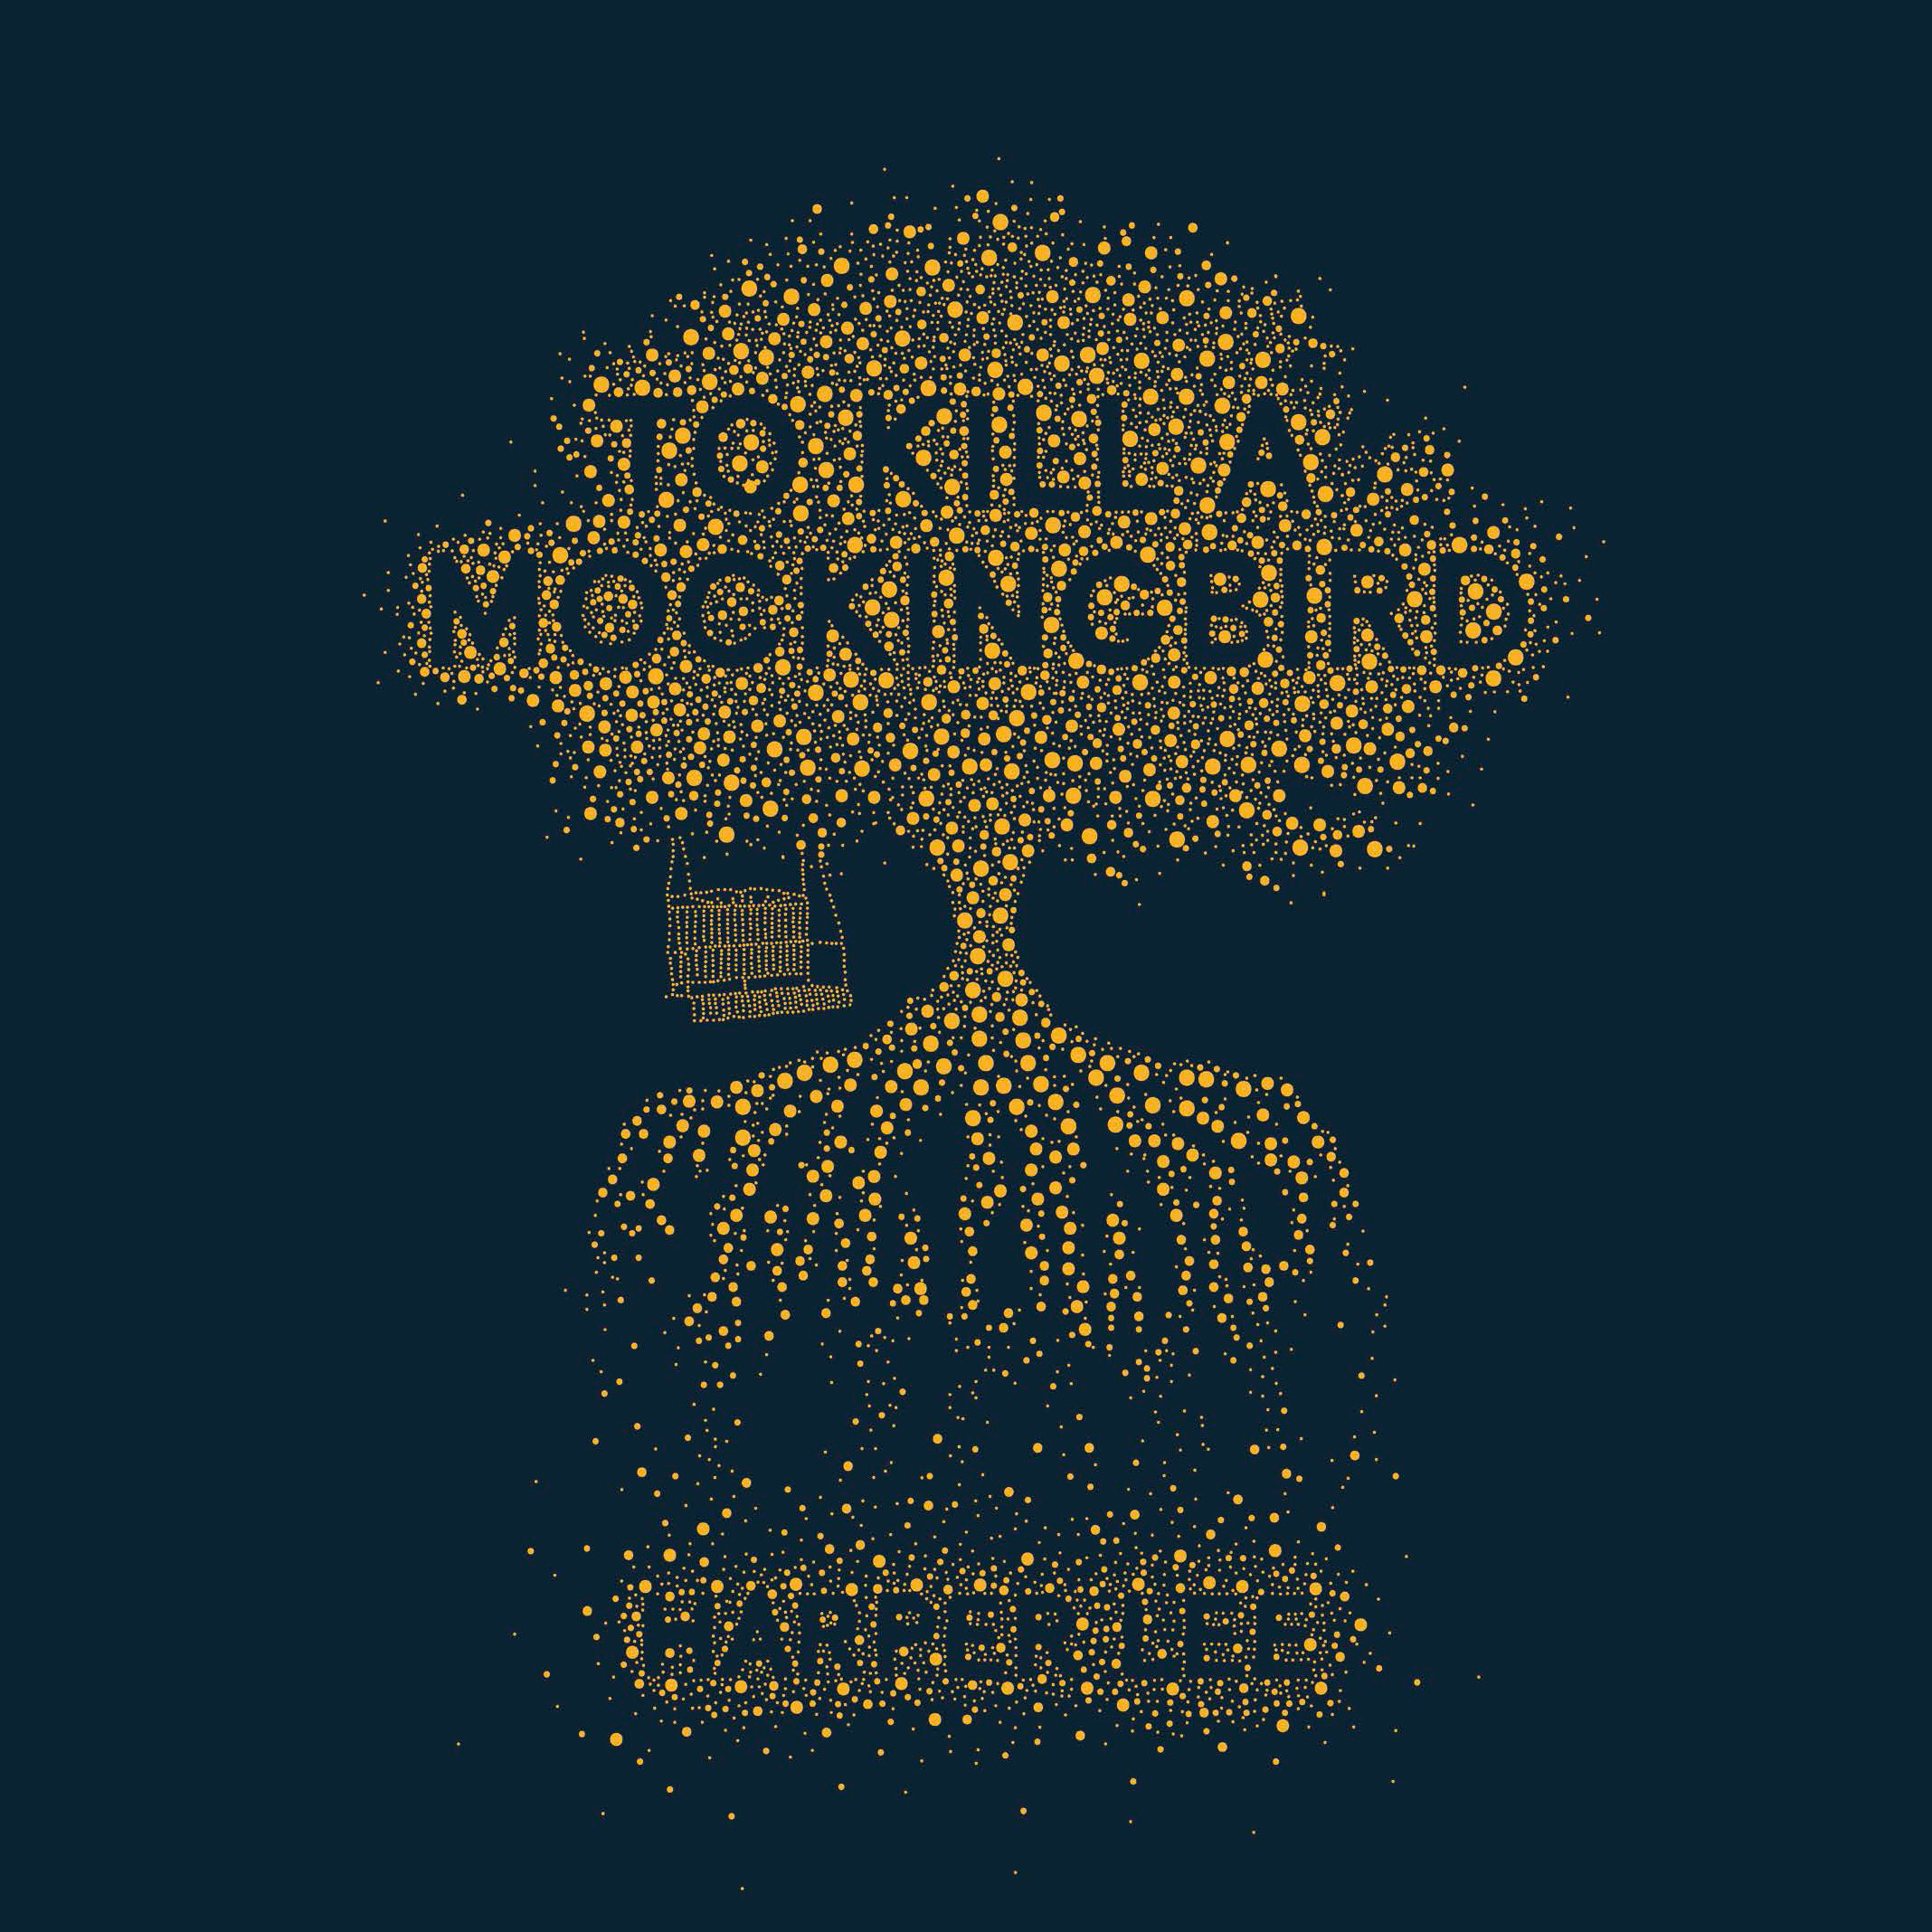 Cover of 'To Kill a Mockingbird' depicting a tree and swingseat created from gold bubbles